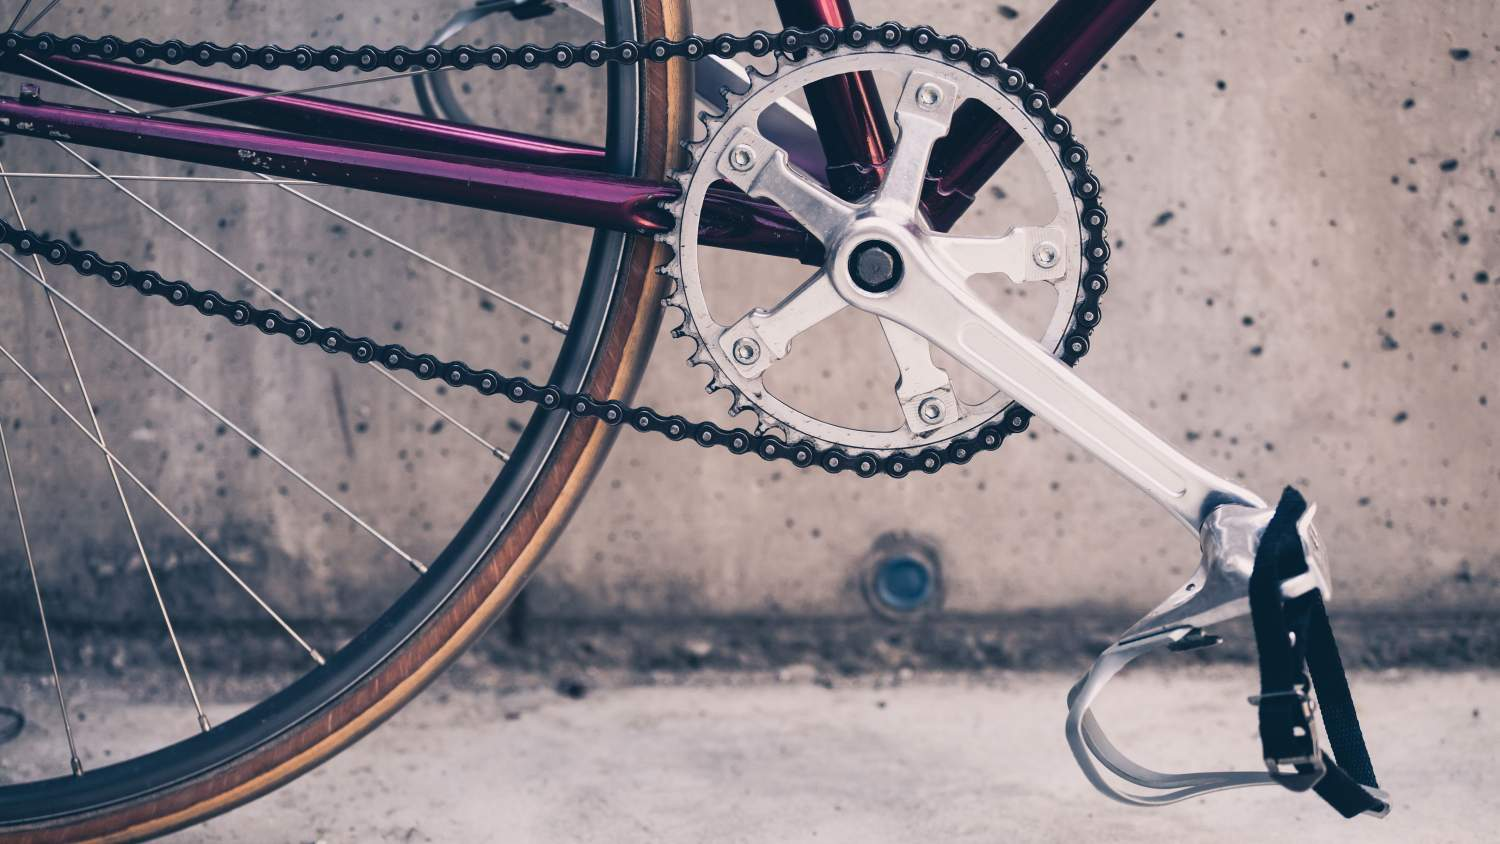 Close-up of a bicycle